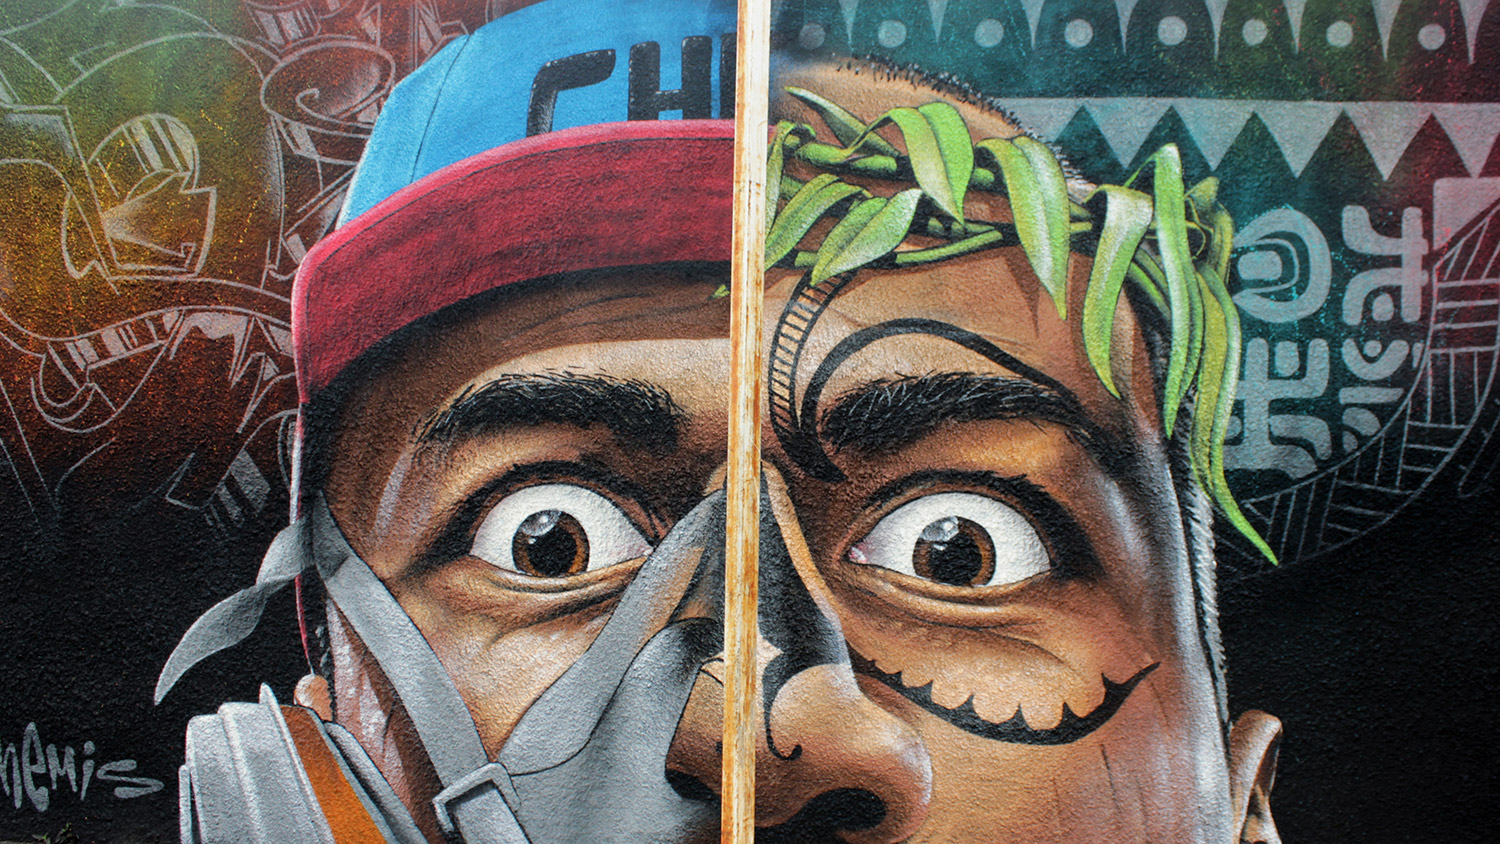 brusel-terrorists-chemis-graffiti-mural